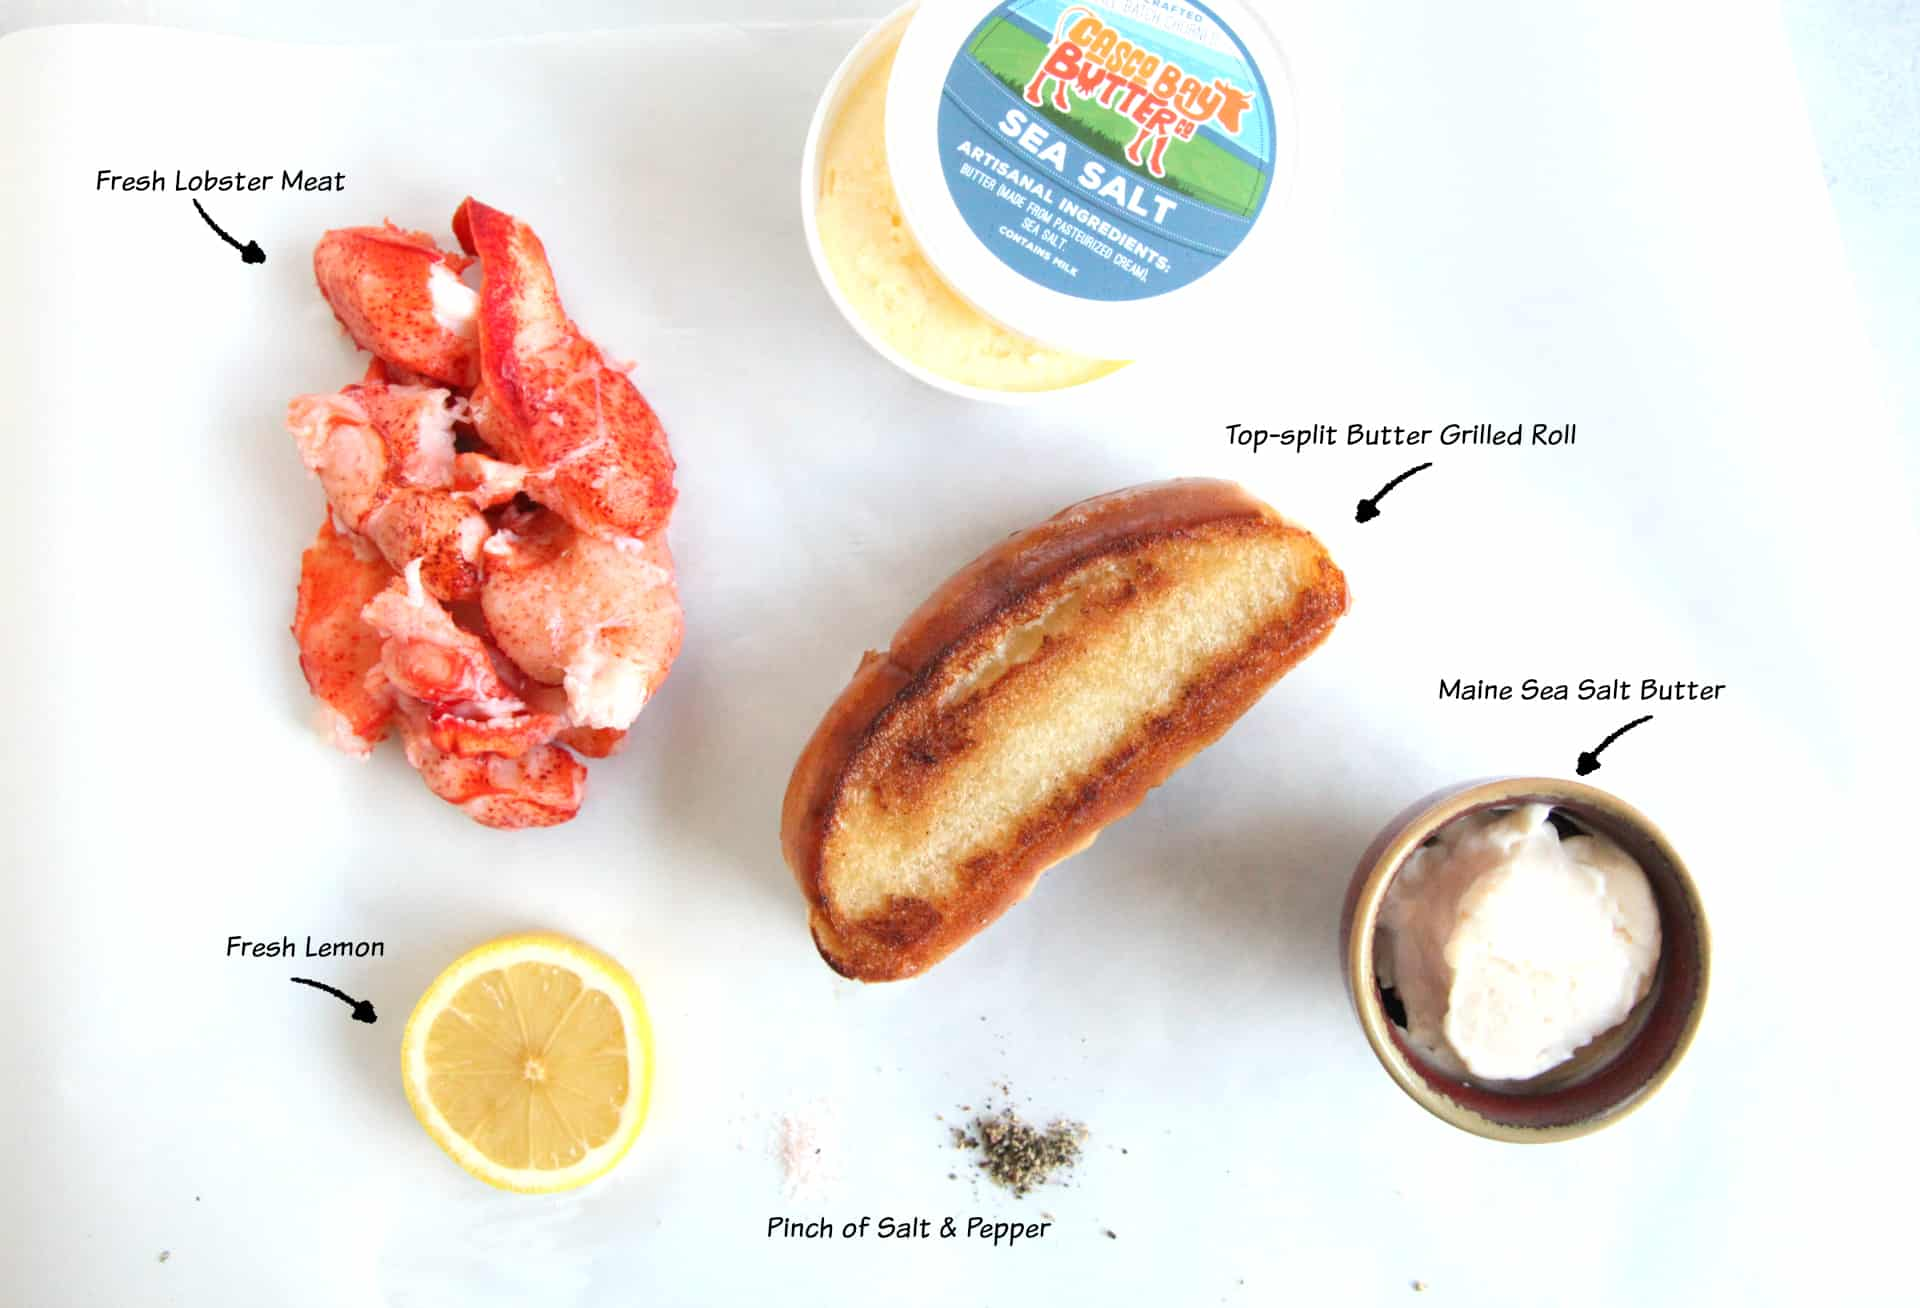 How To Make The Best Lobster Rolls A Definitive Step By Step Guide